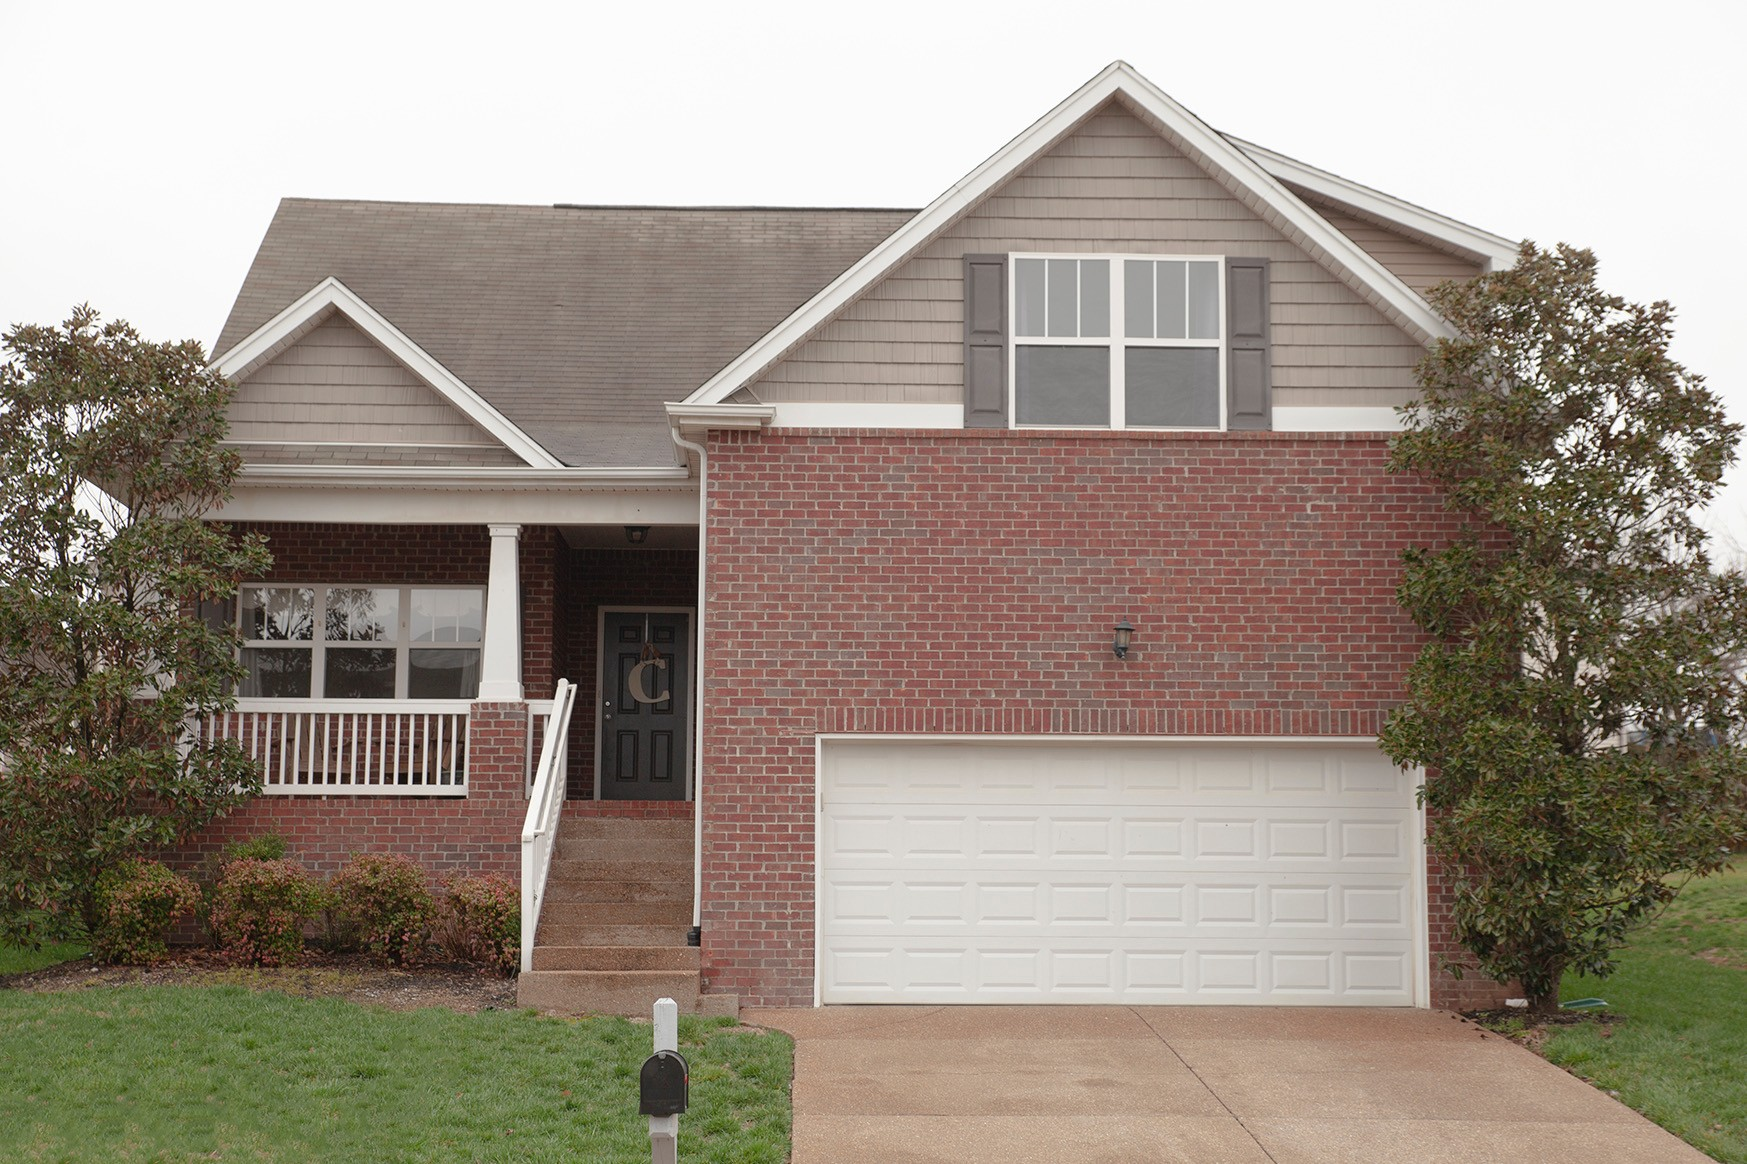 1494 Bern Dr, Spring Hill, Tennessee